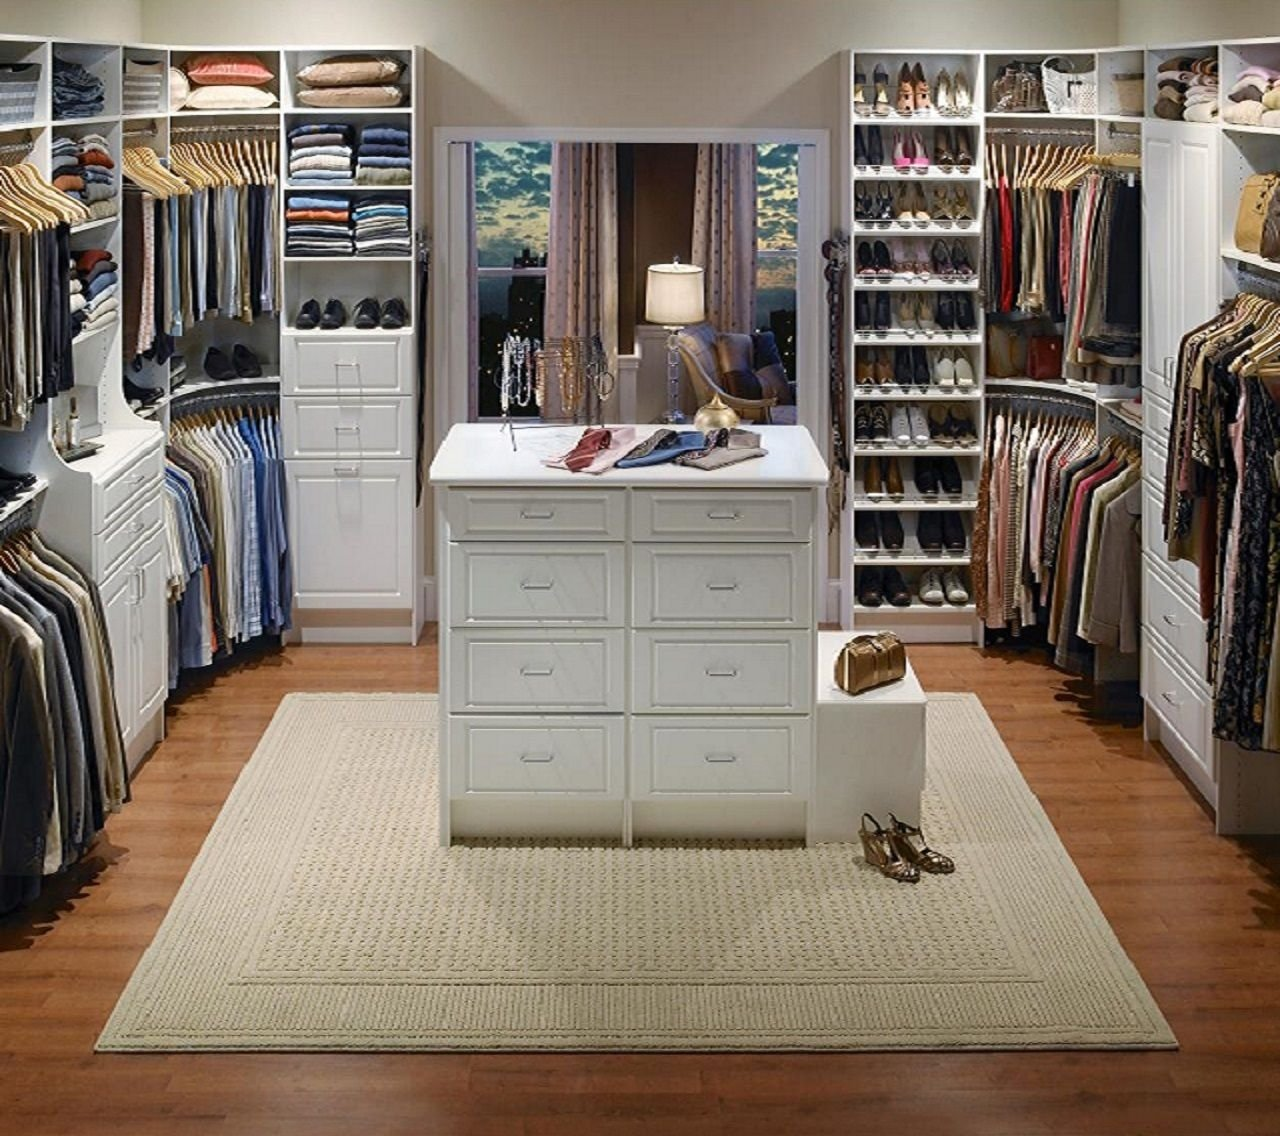 10 Awesome Ideas For Walk In Closets int walk in closet 5 med episodeinteractive episode size 1280 x 2020